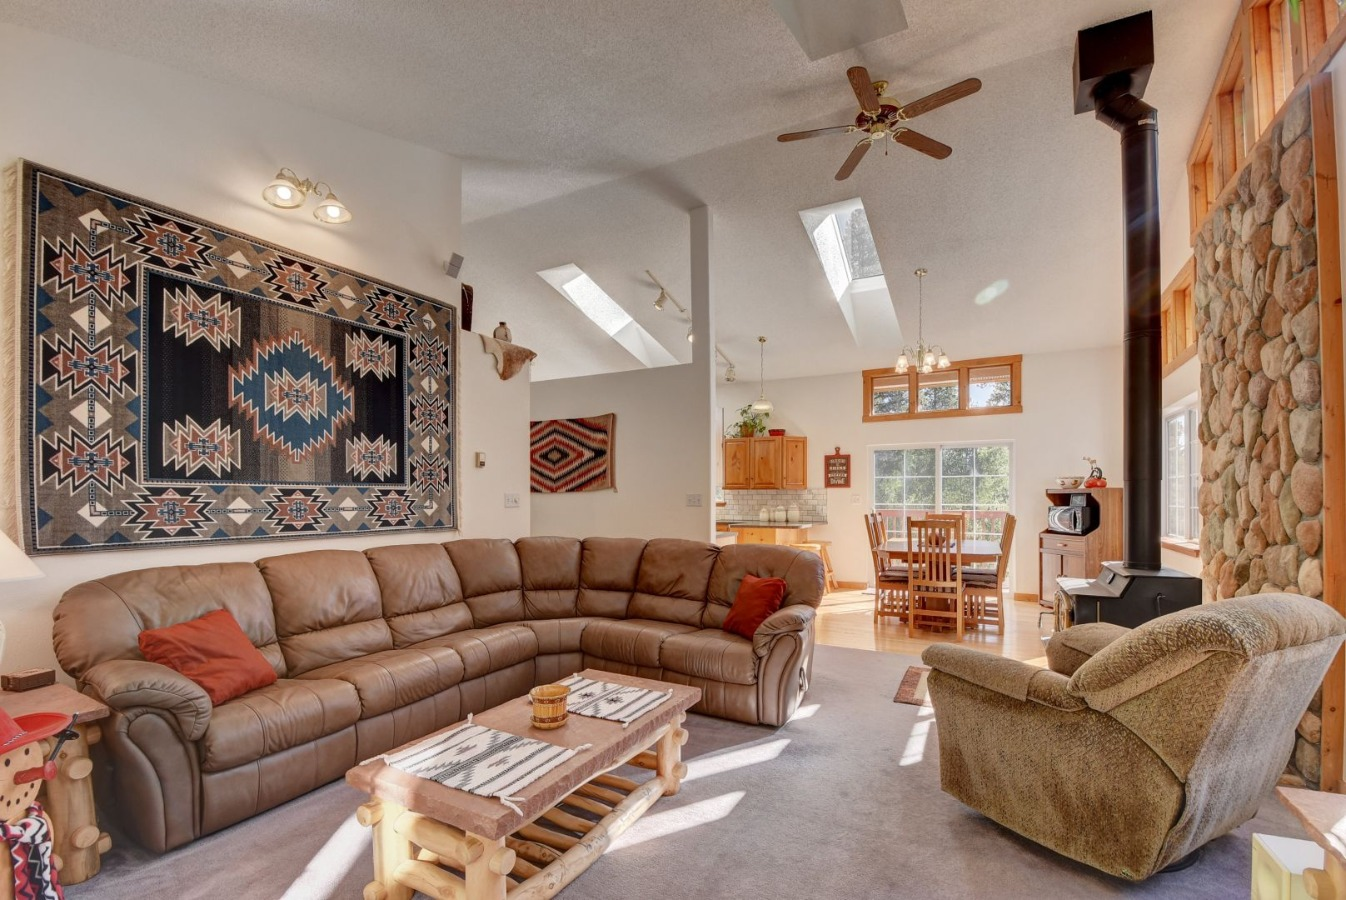 Cozy Living room has vaulted ceilings